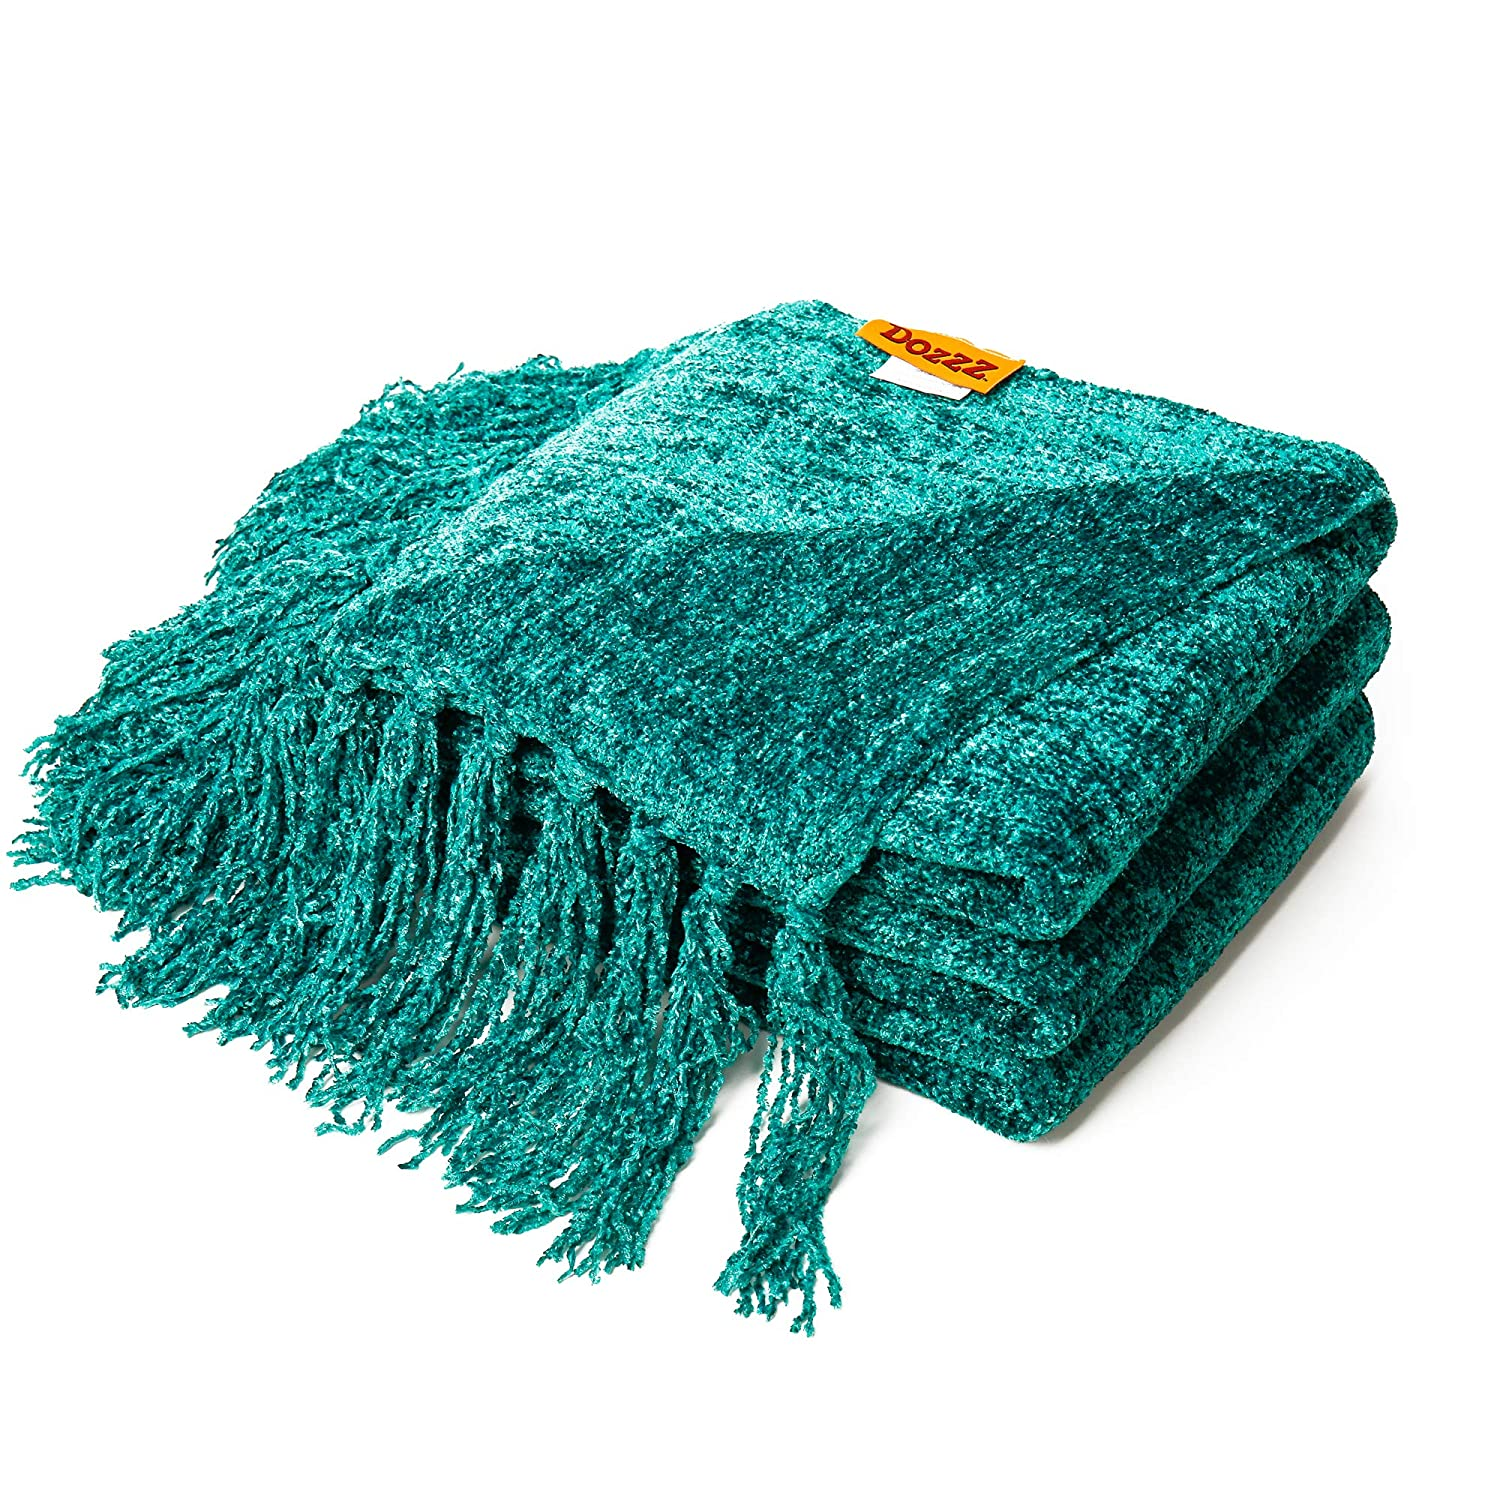 Surprising Dozzz Fluffy Chenille Knitted Throw Blanket With Decorative Fringe For Home Decor Bed Sofa Couch Chair Teal Andrewgaddart Wooden Chair Designs For Living Room Andrewgaddartcom